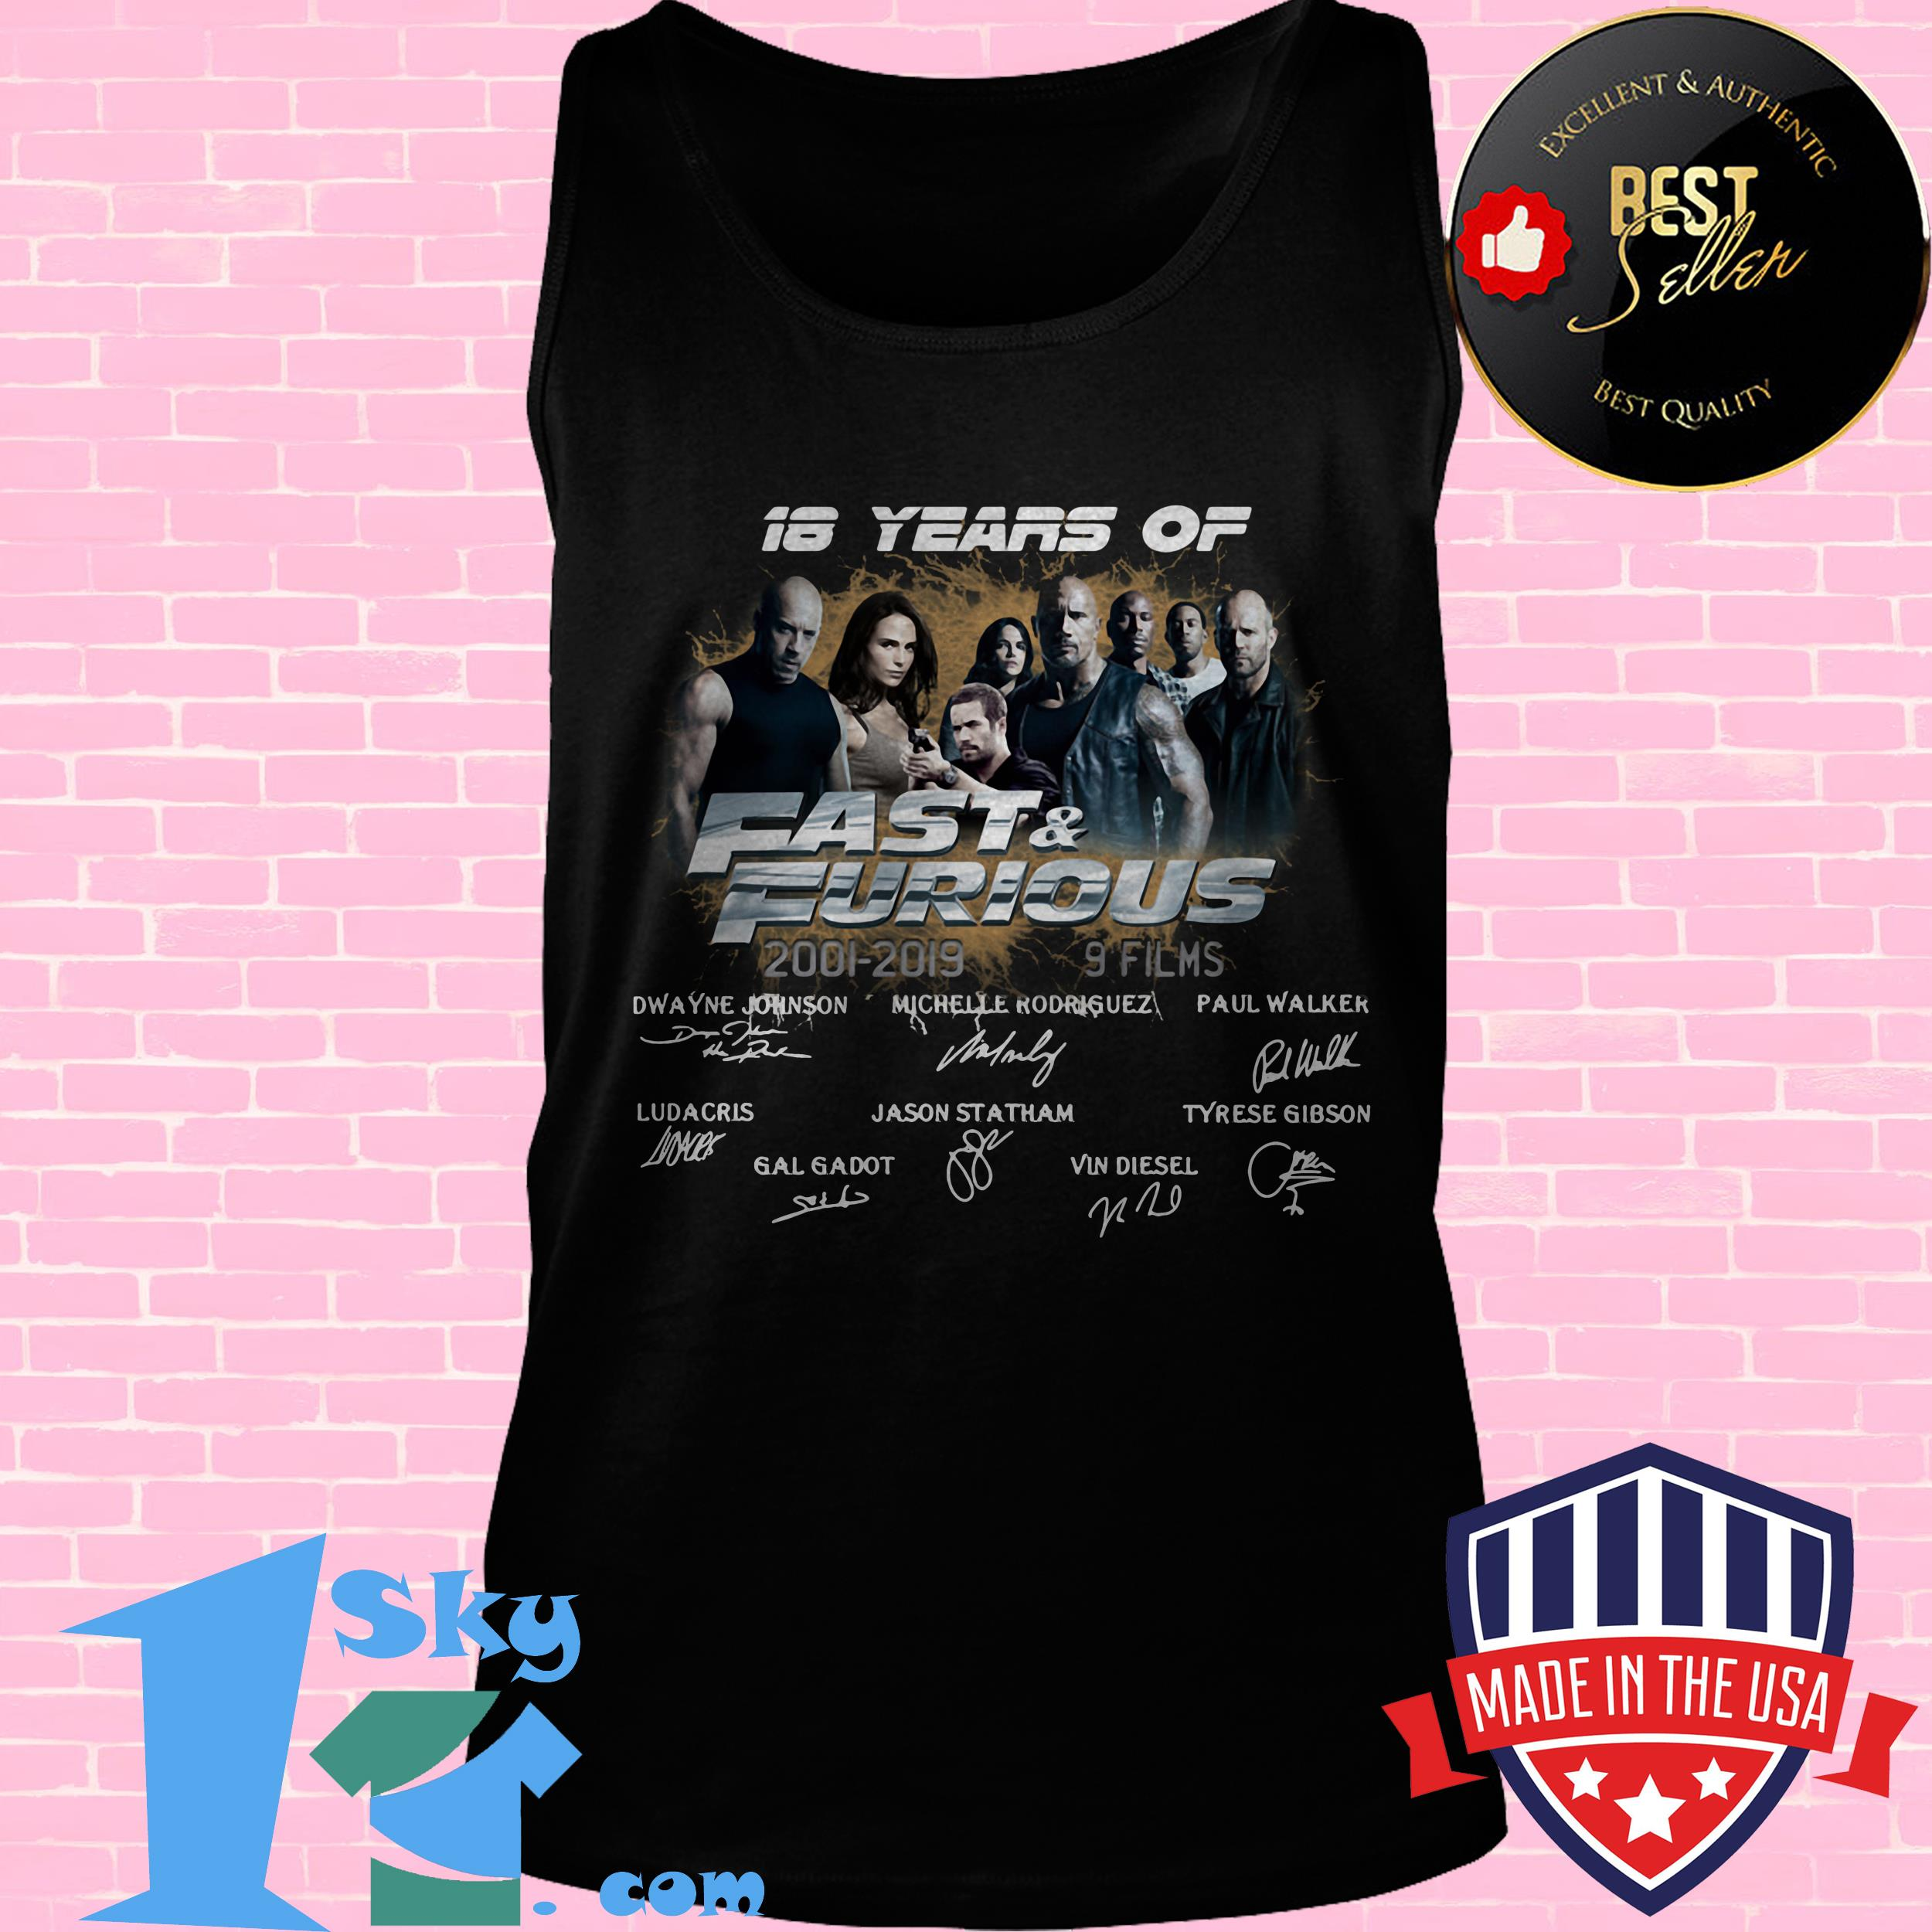 18 years of fast furious 2001 2019 8 films signature tank top - 18 Years Of Fast & Furious 2001-2019 8 Films Signature shirt